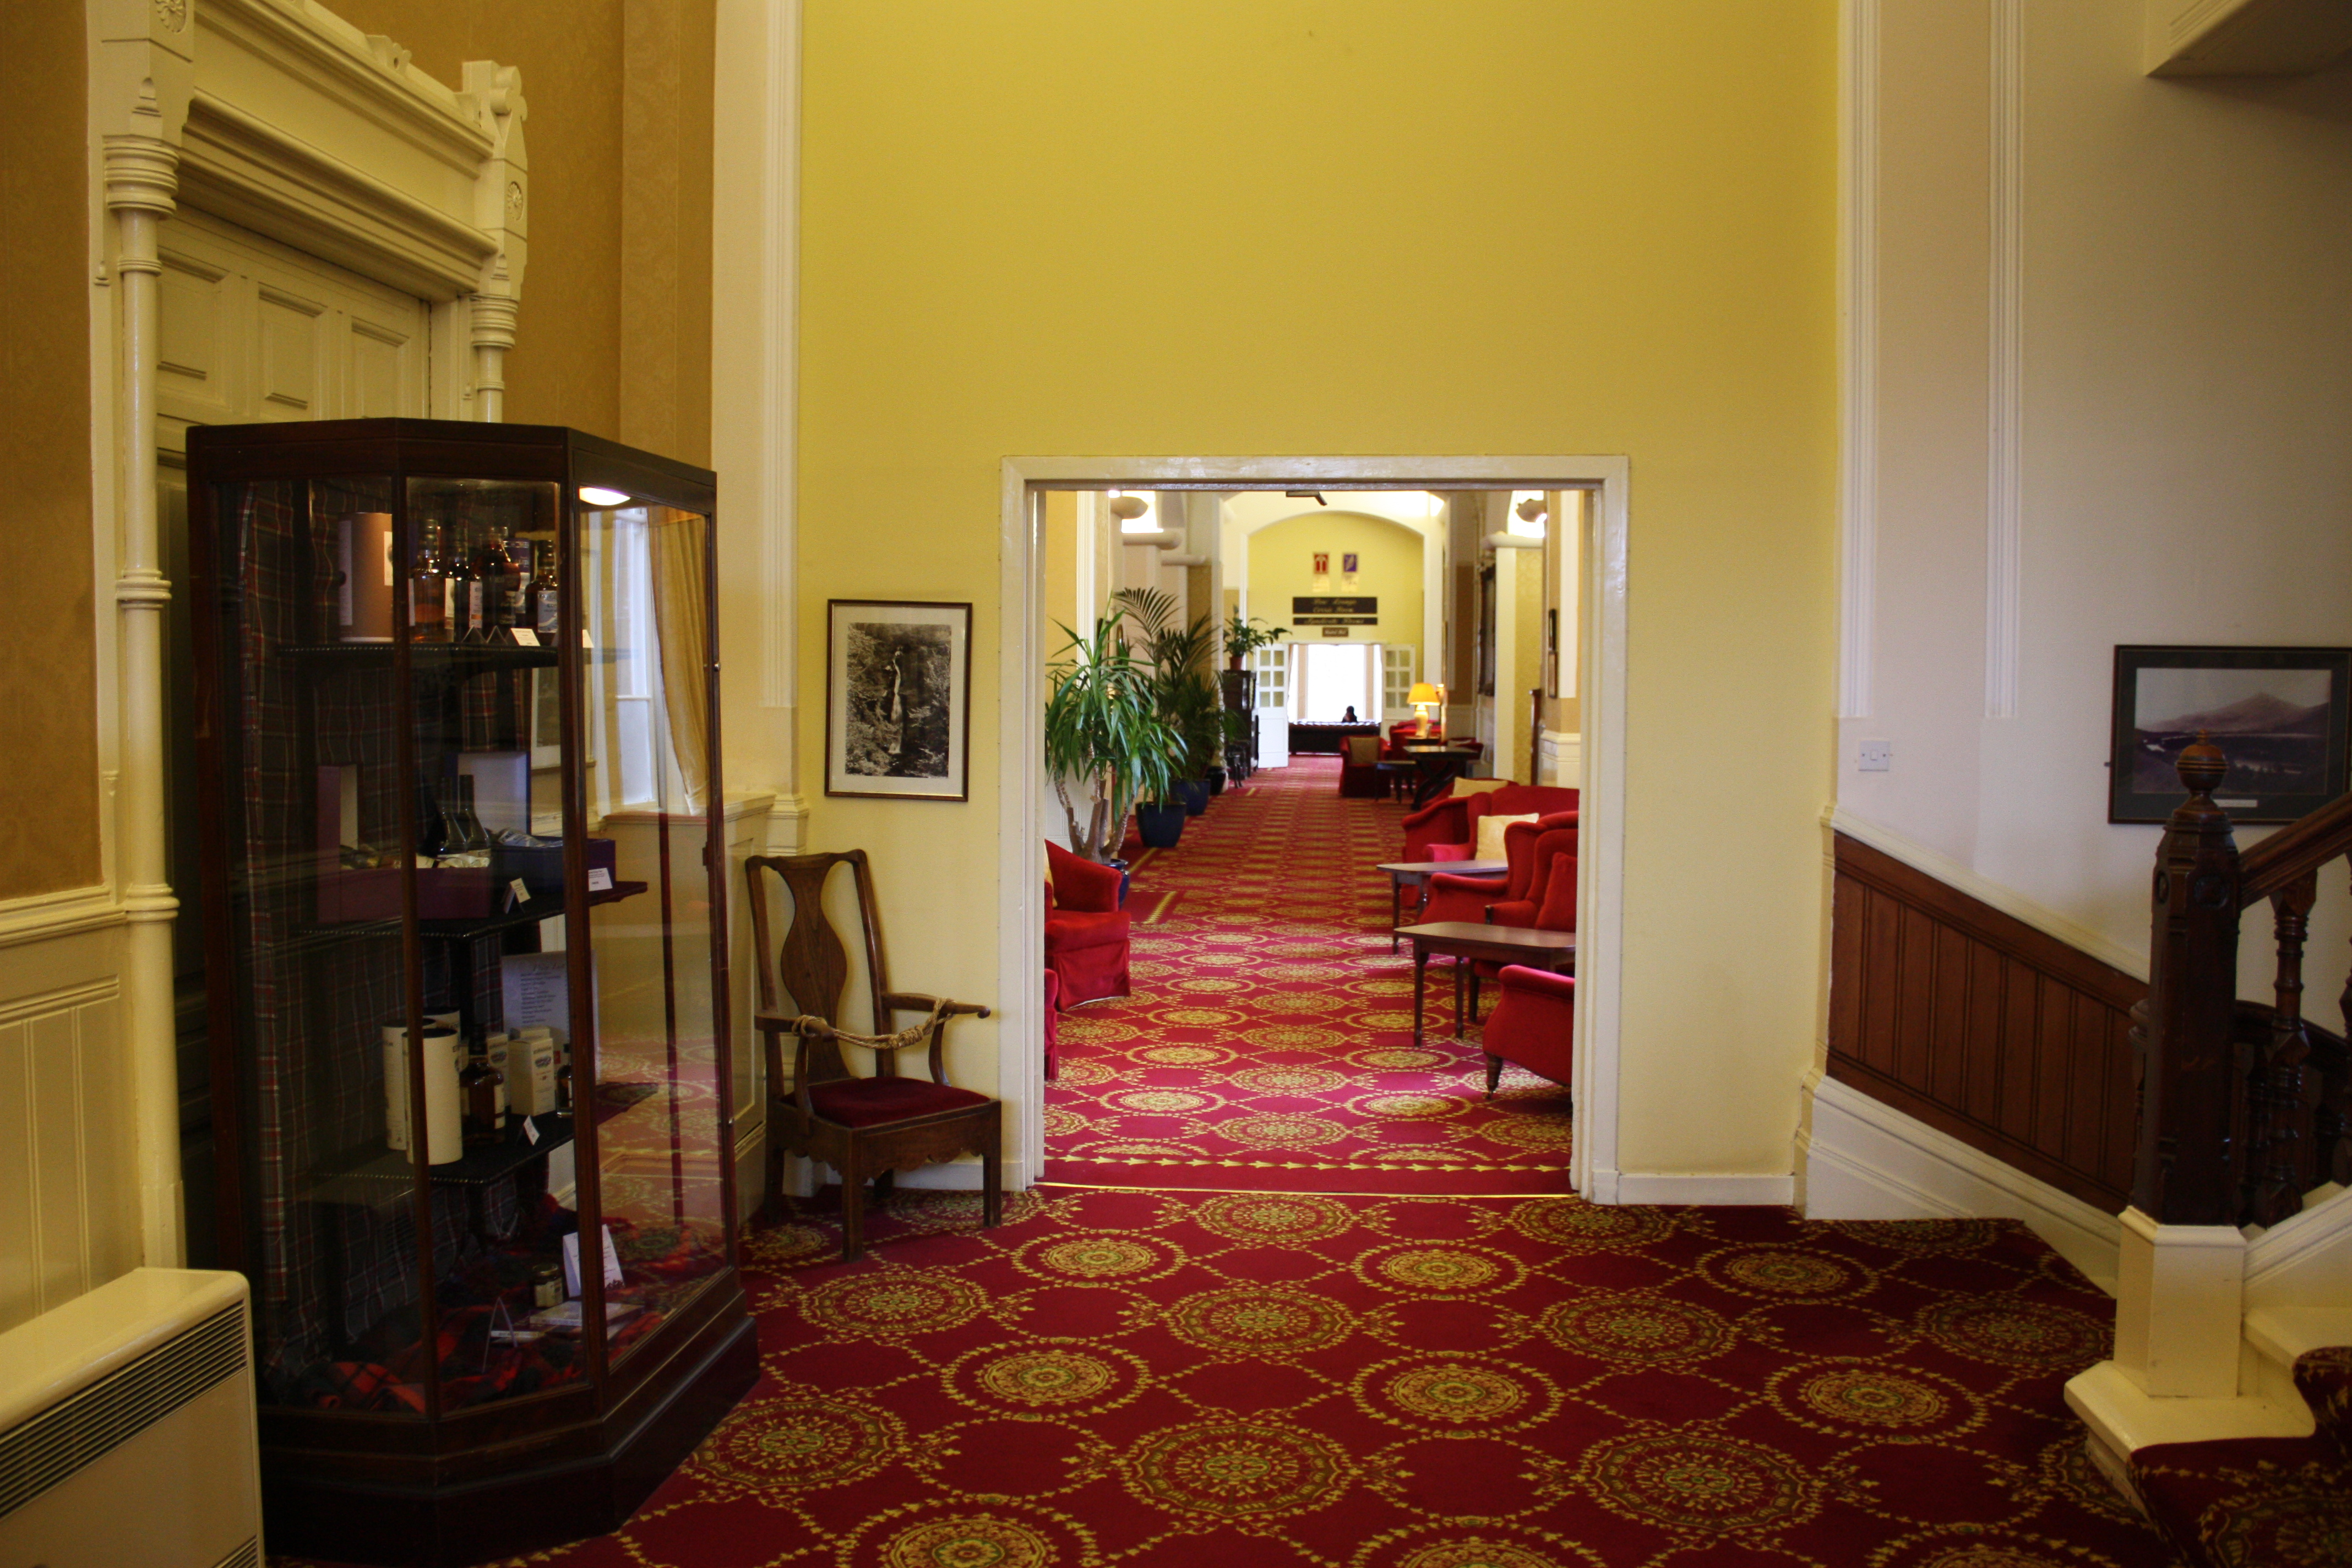 Palace Hotel Inverness